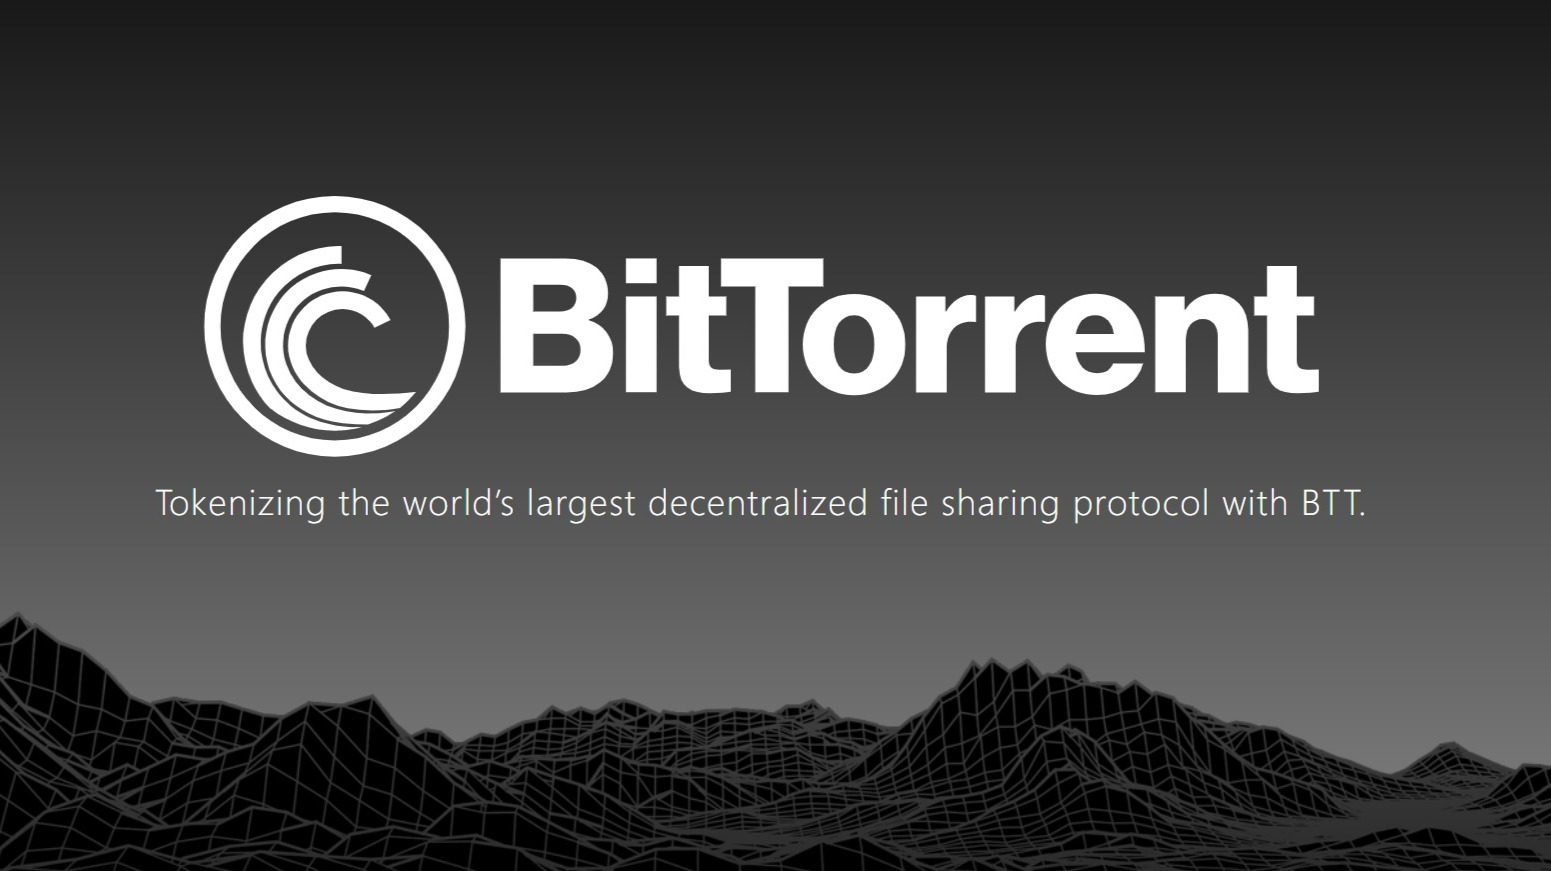 https://www.bittorrent.com/btt/